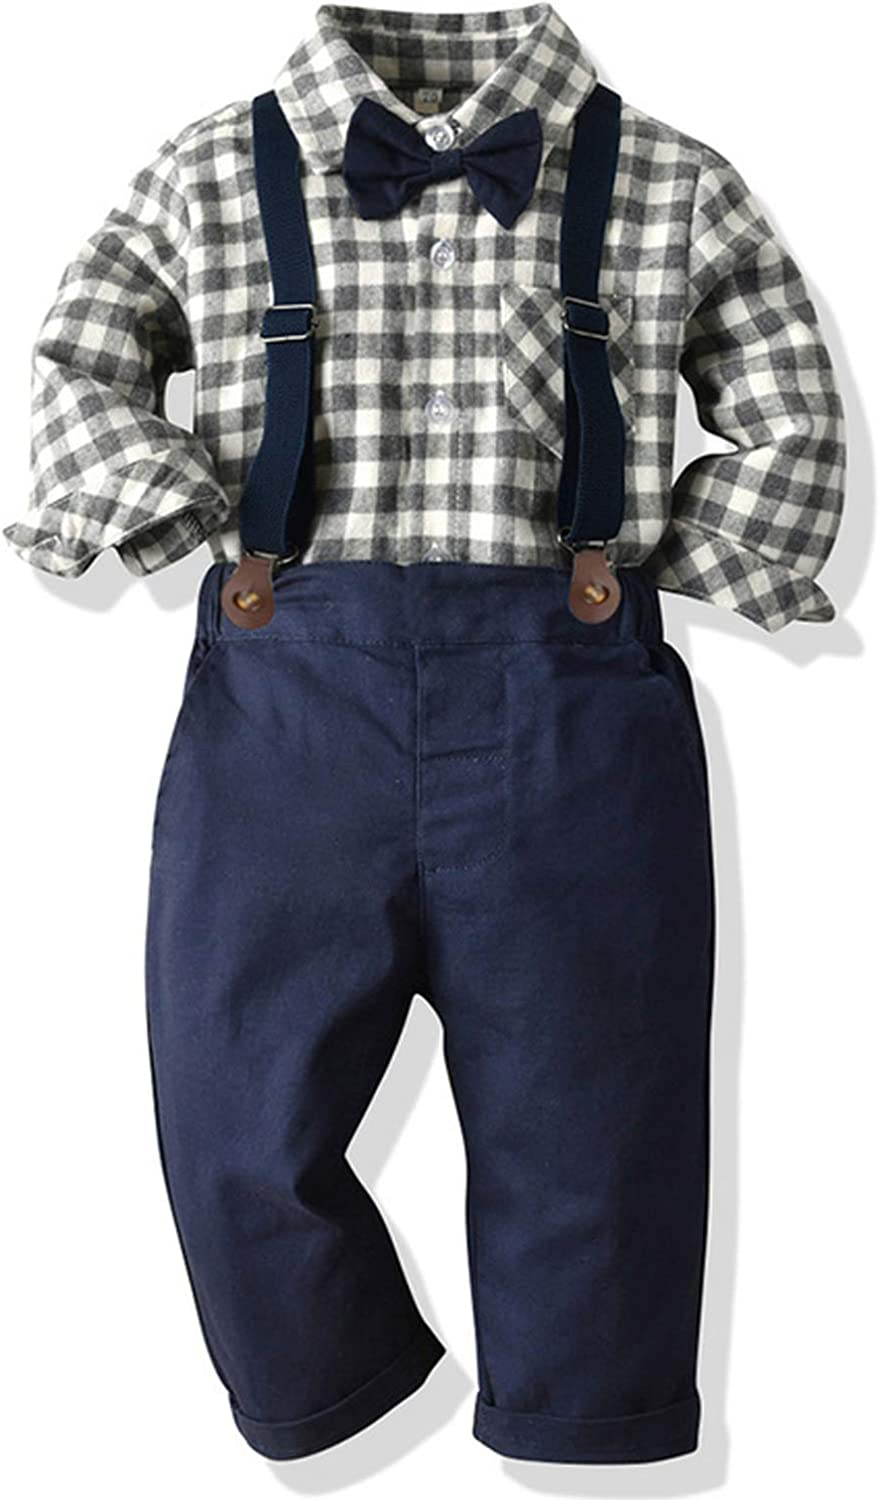 Suspenders Pants 3pcs Gentleman Outfits Suits 6 Month 6 Years Toddler Dress Suit Baby Boys Clothes Sets Bowtie Shirts